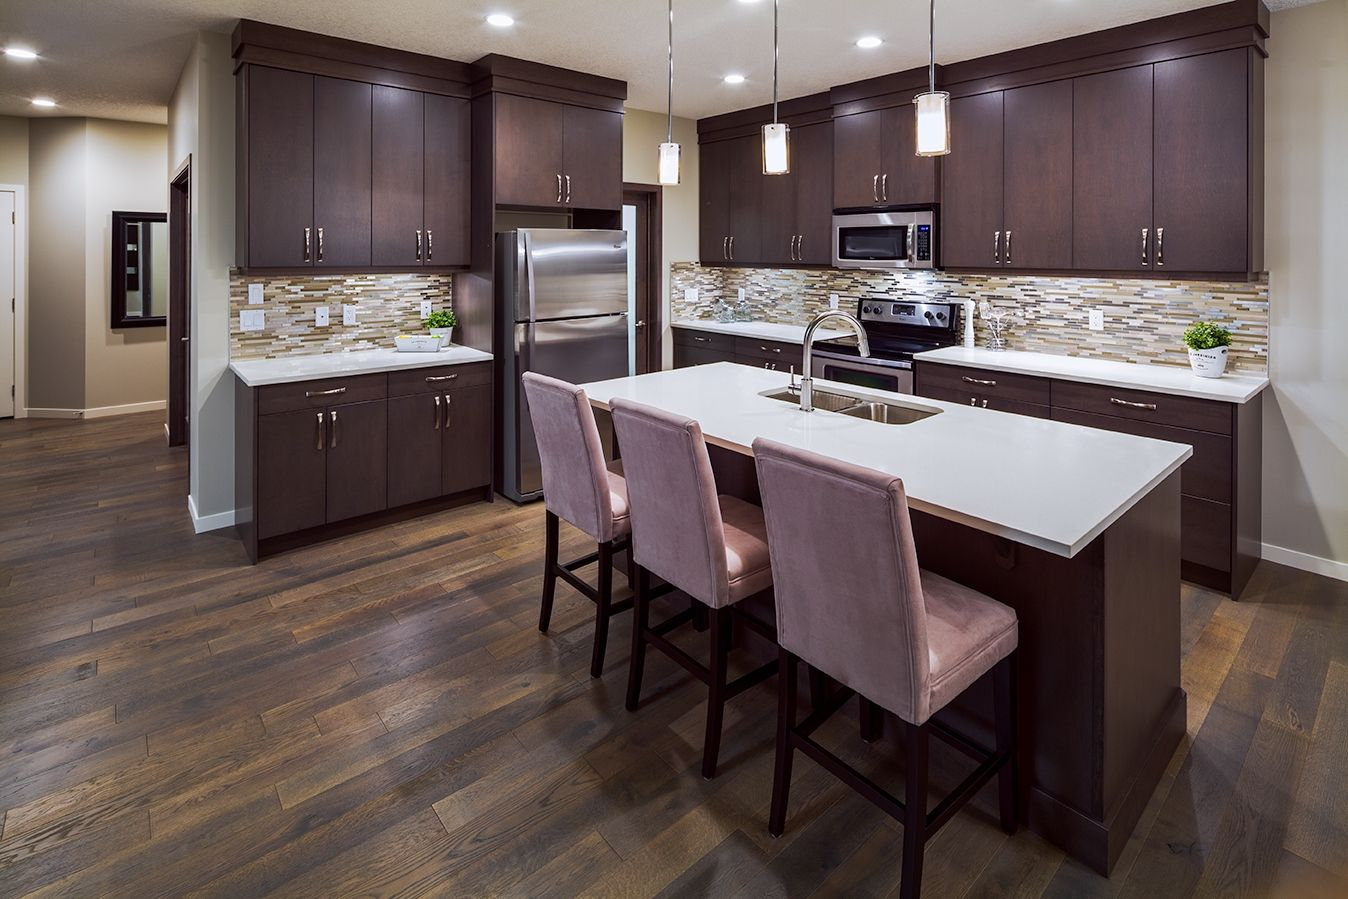 Showhome at 252 auburn bay drive se calgary ab photo by for Ak kitchen cabinets calgary